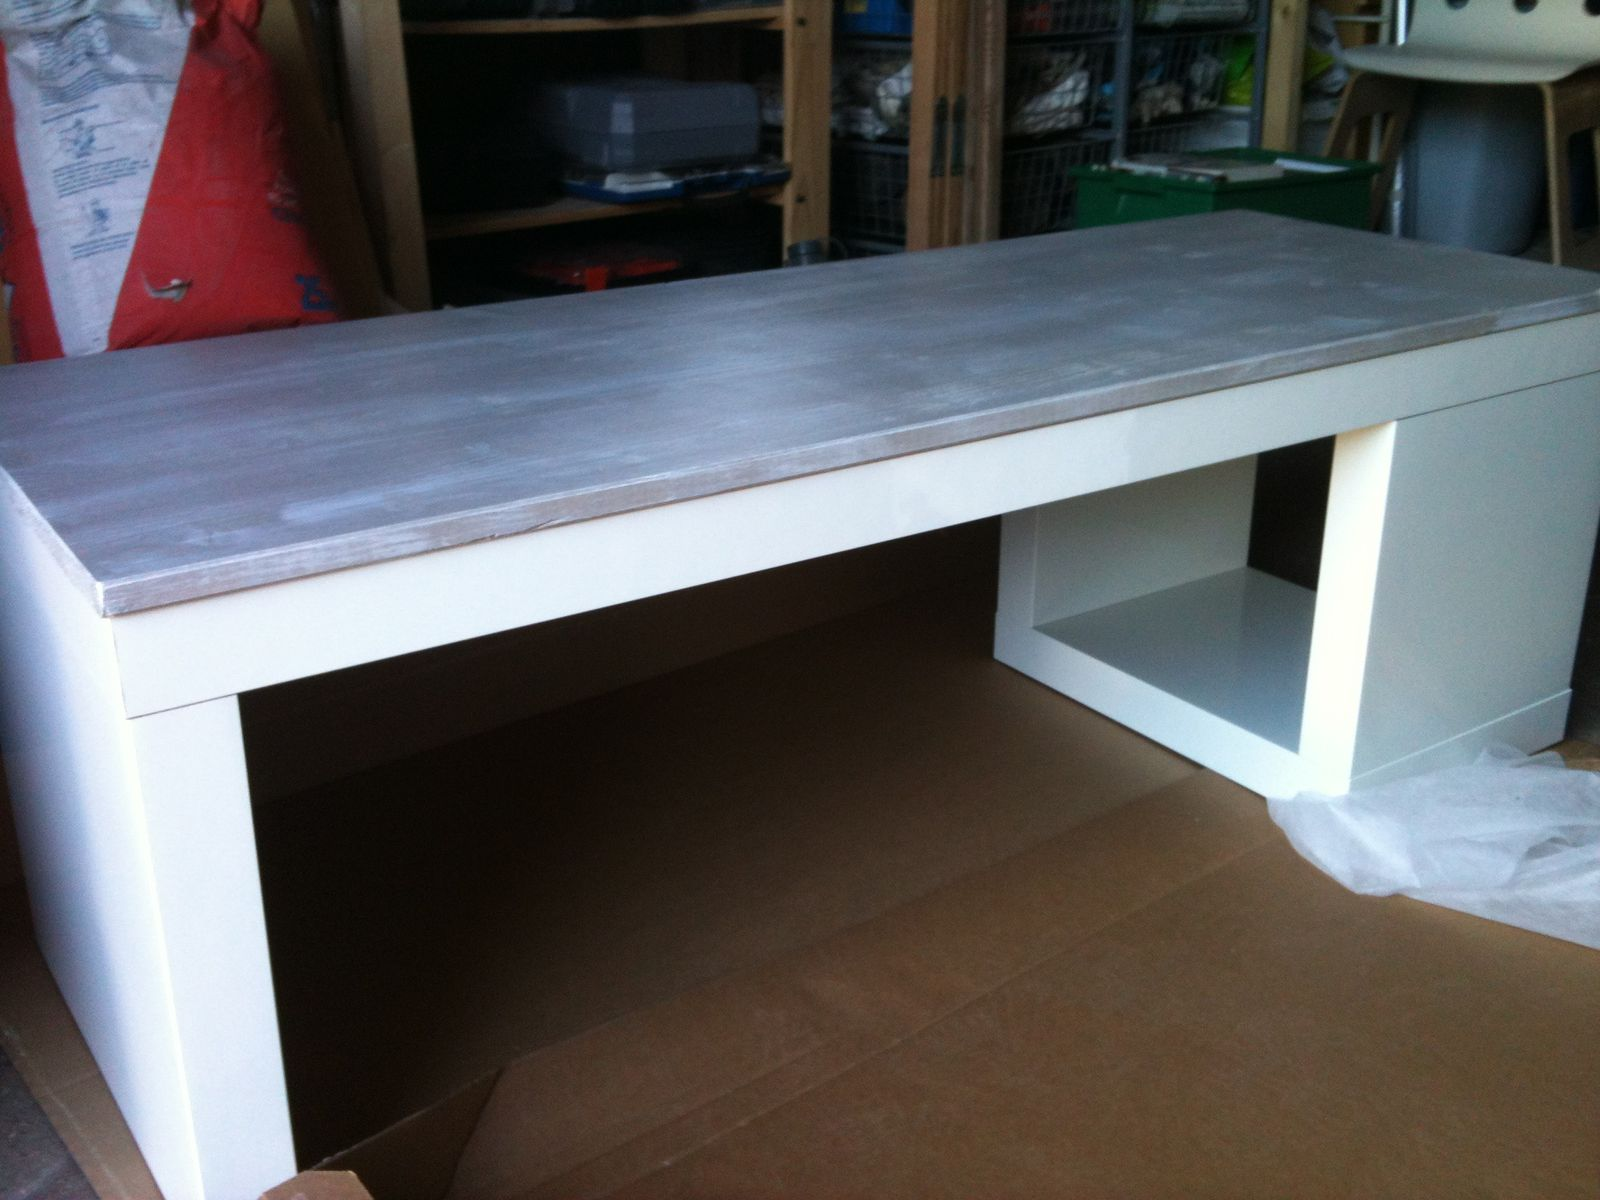 Table basse meuble tv ikea solutions pour la d coration - Meuble support tv ikea ...